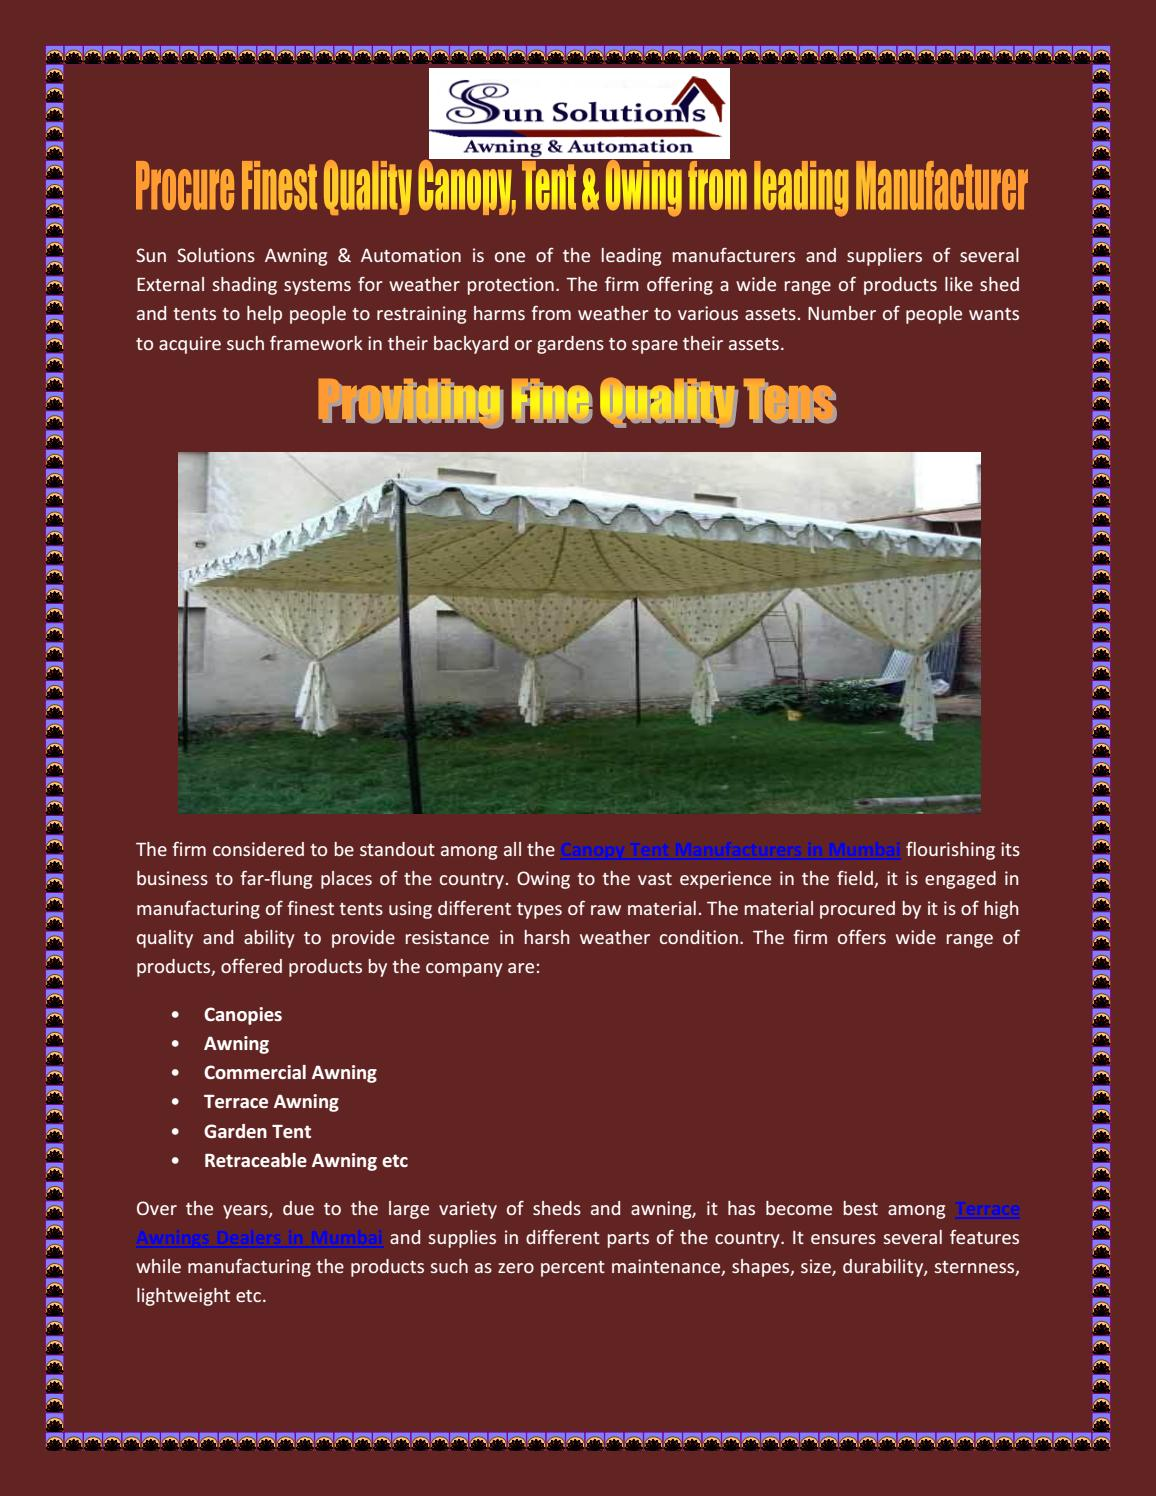 Procure Finest Quality Canopy, Tent & Owing from leading